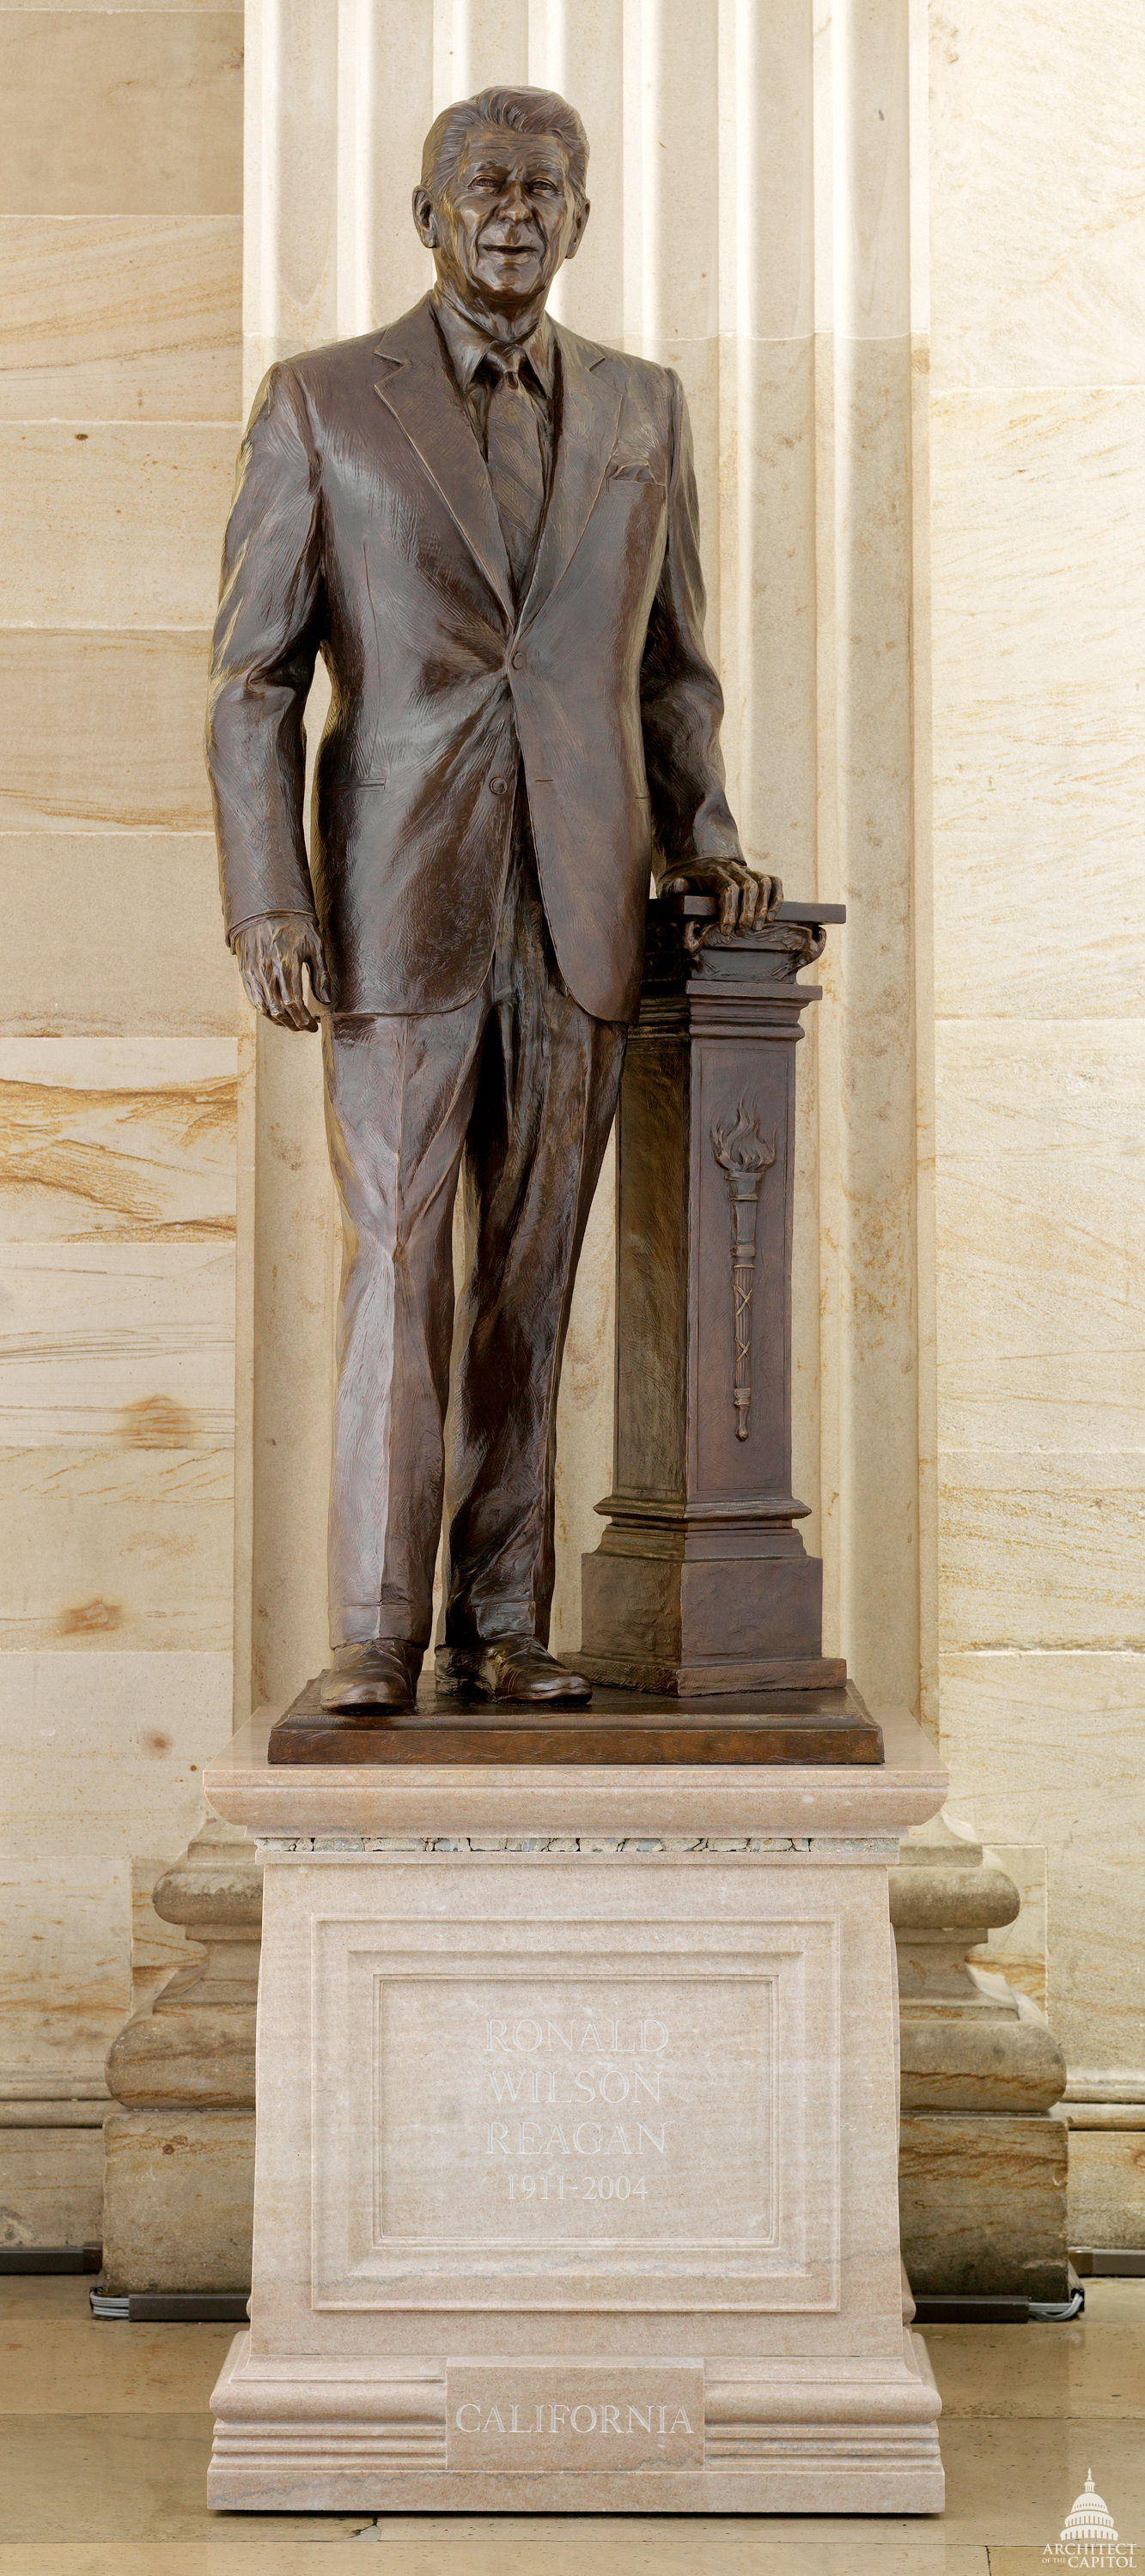 Ronald Wilson Reagan Architect Of The Capitol